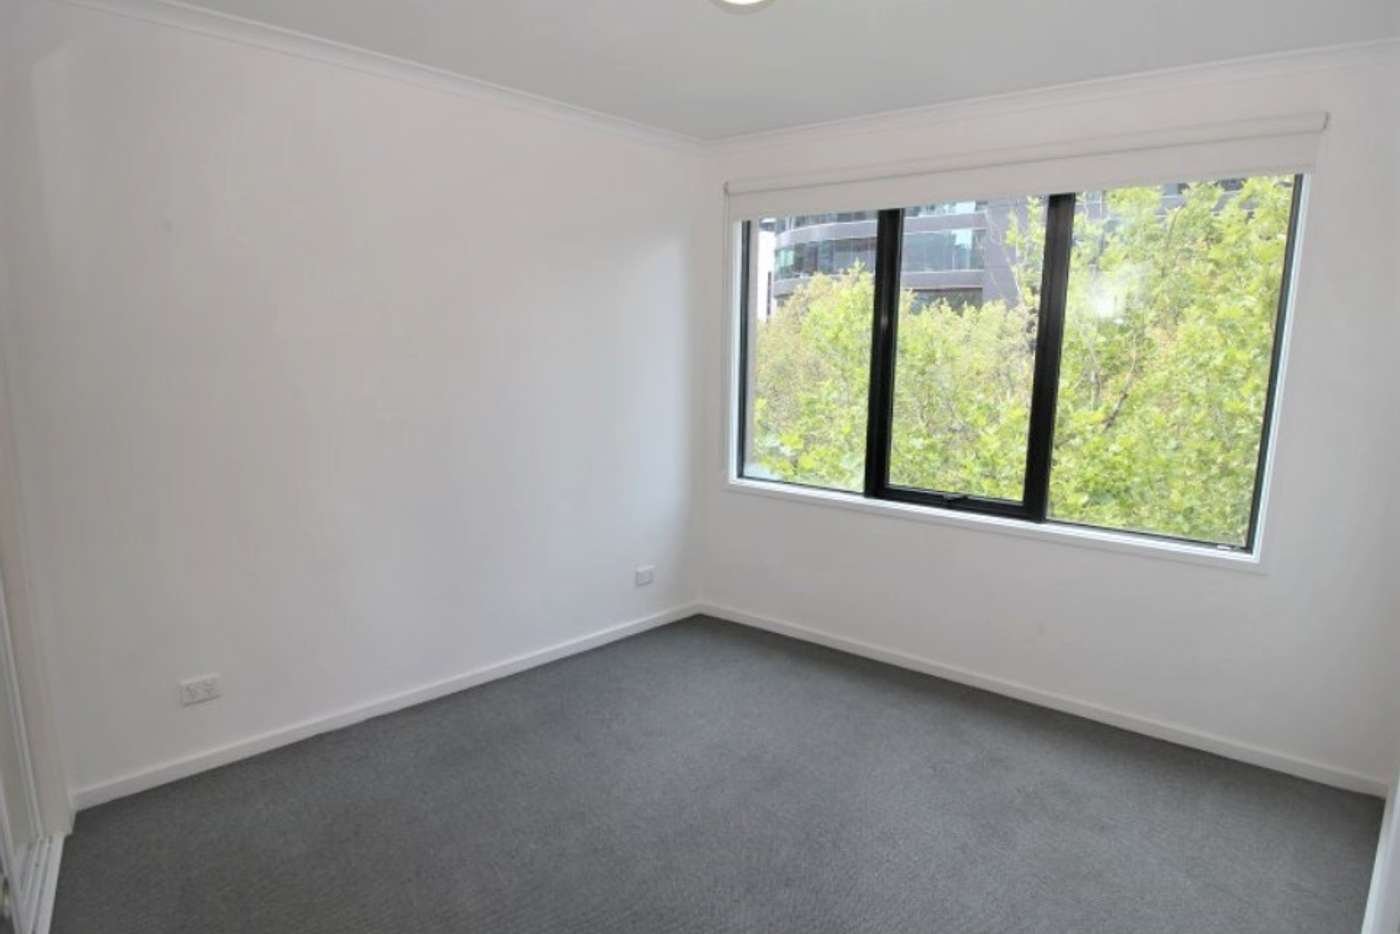 Seventh view of Homely apartment listing, Unit 32/88 Southbank Bvd, Southbank VIC 3006